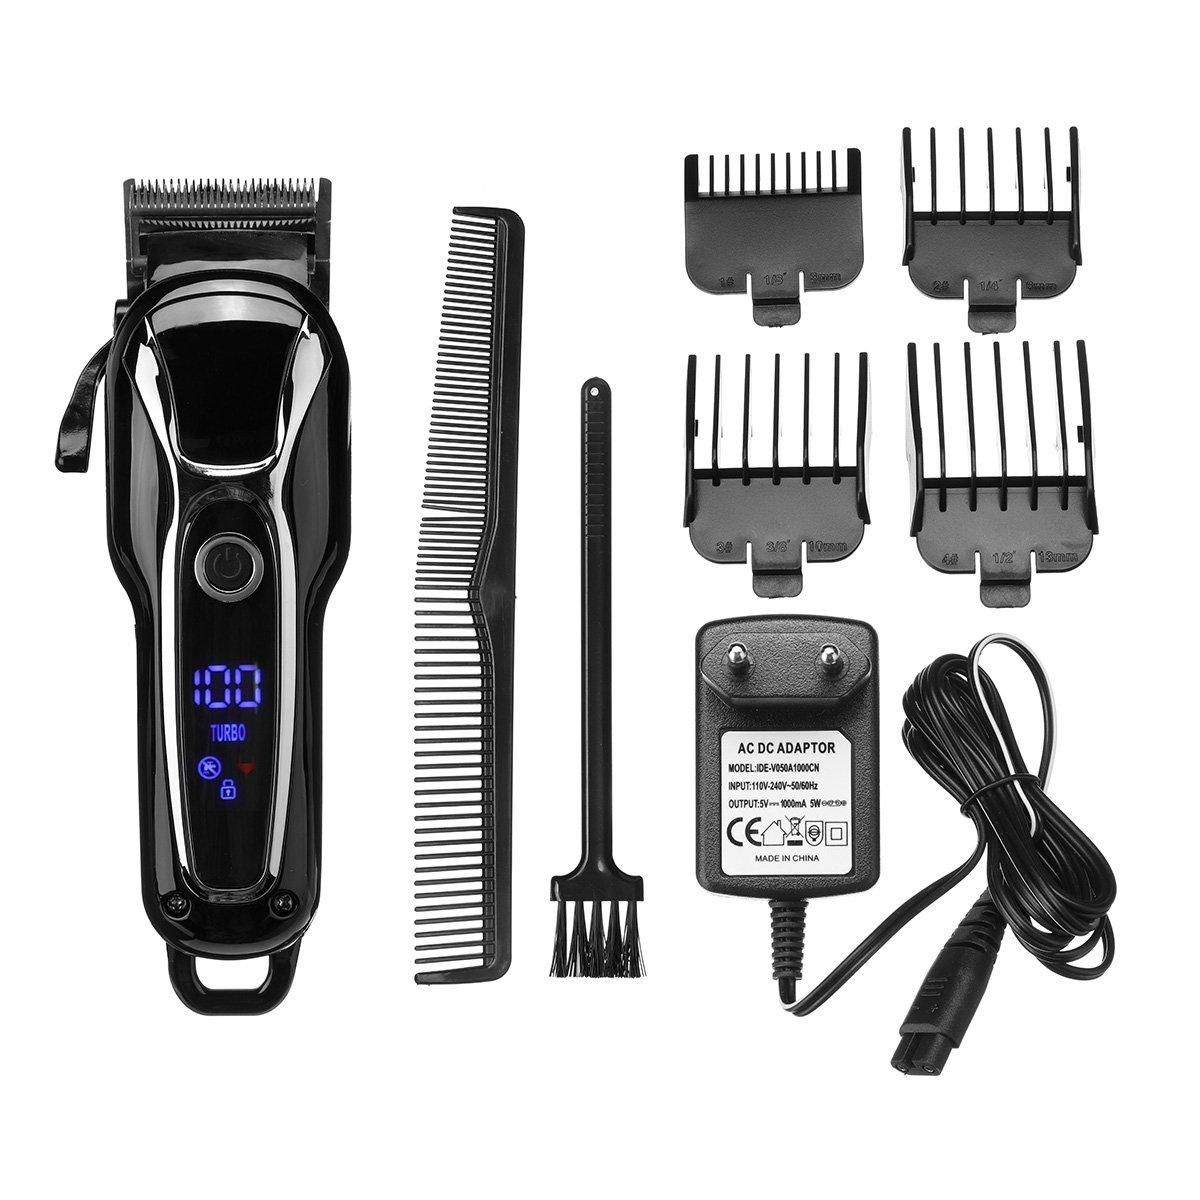 SURKER 4 Attachment Combs Ceramic Cutting Head Hair Clipper Men's Electric Cordless Hair Trimmer kit